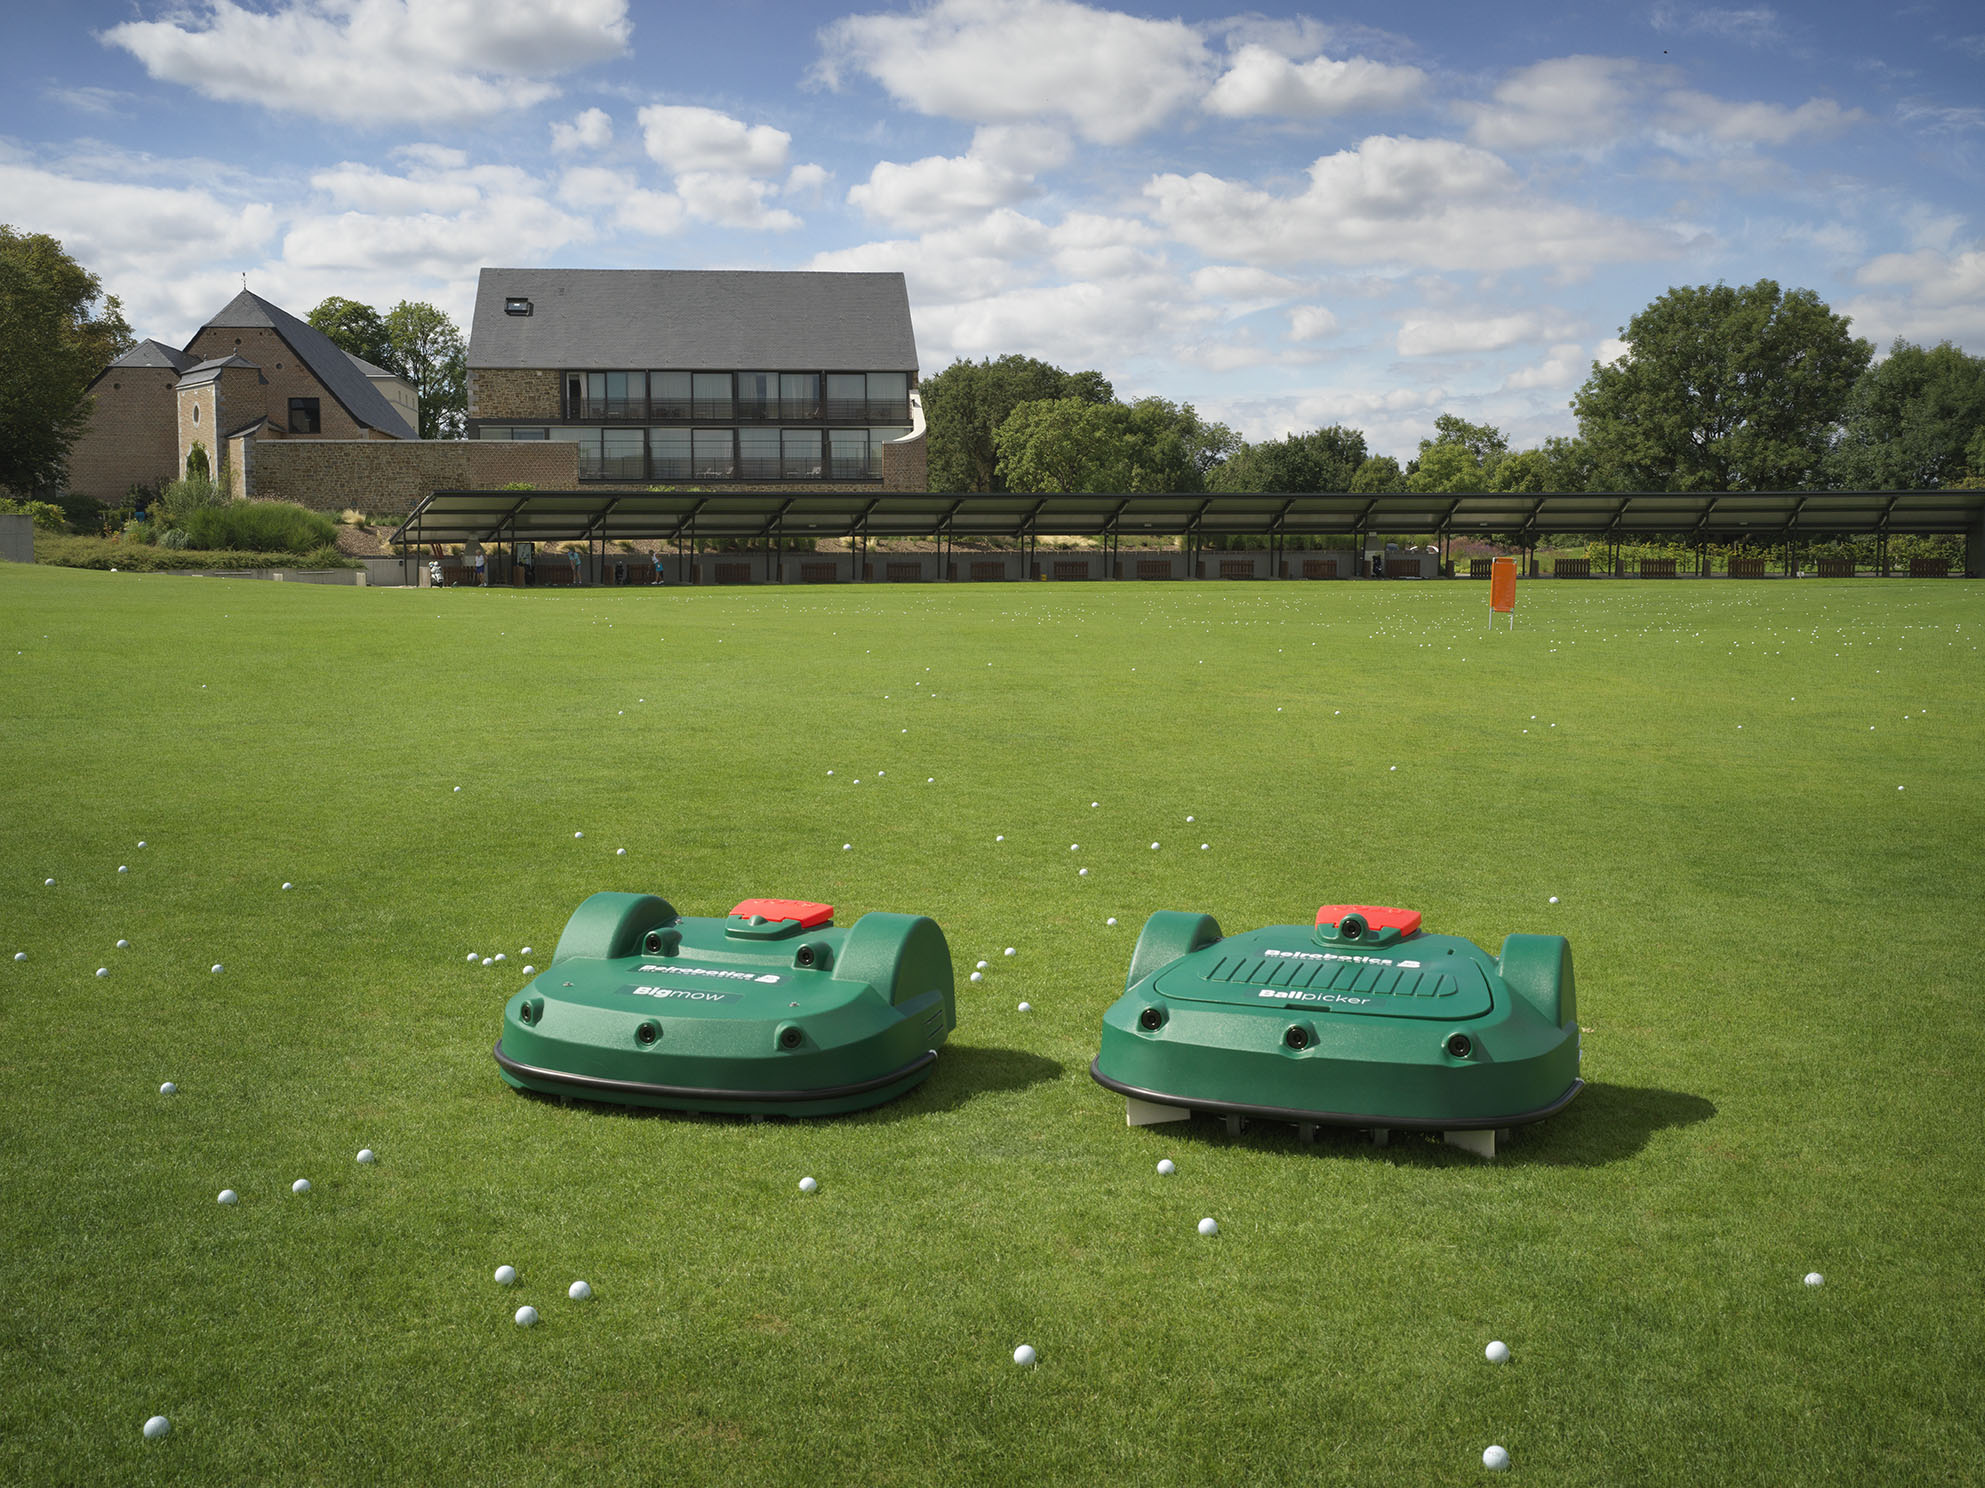 BigMow robotic mower and BallPicker the ball collector robot